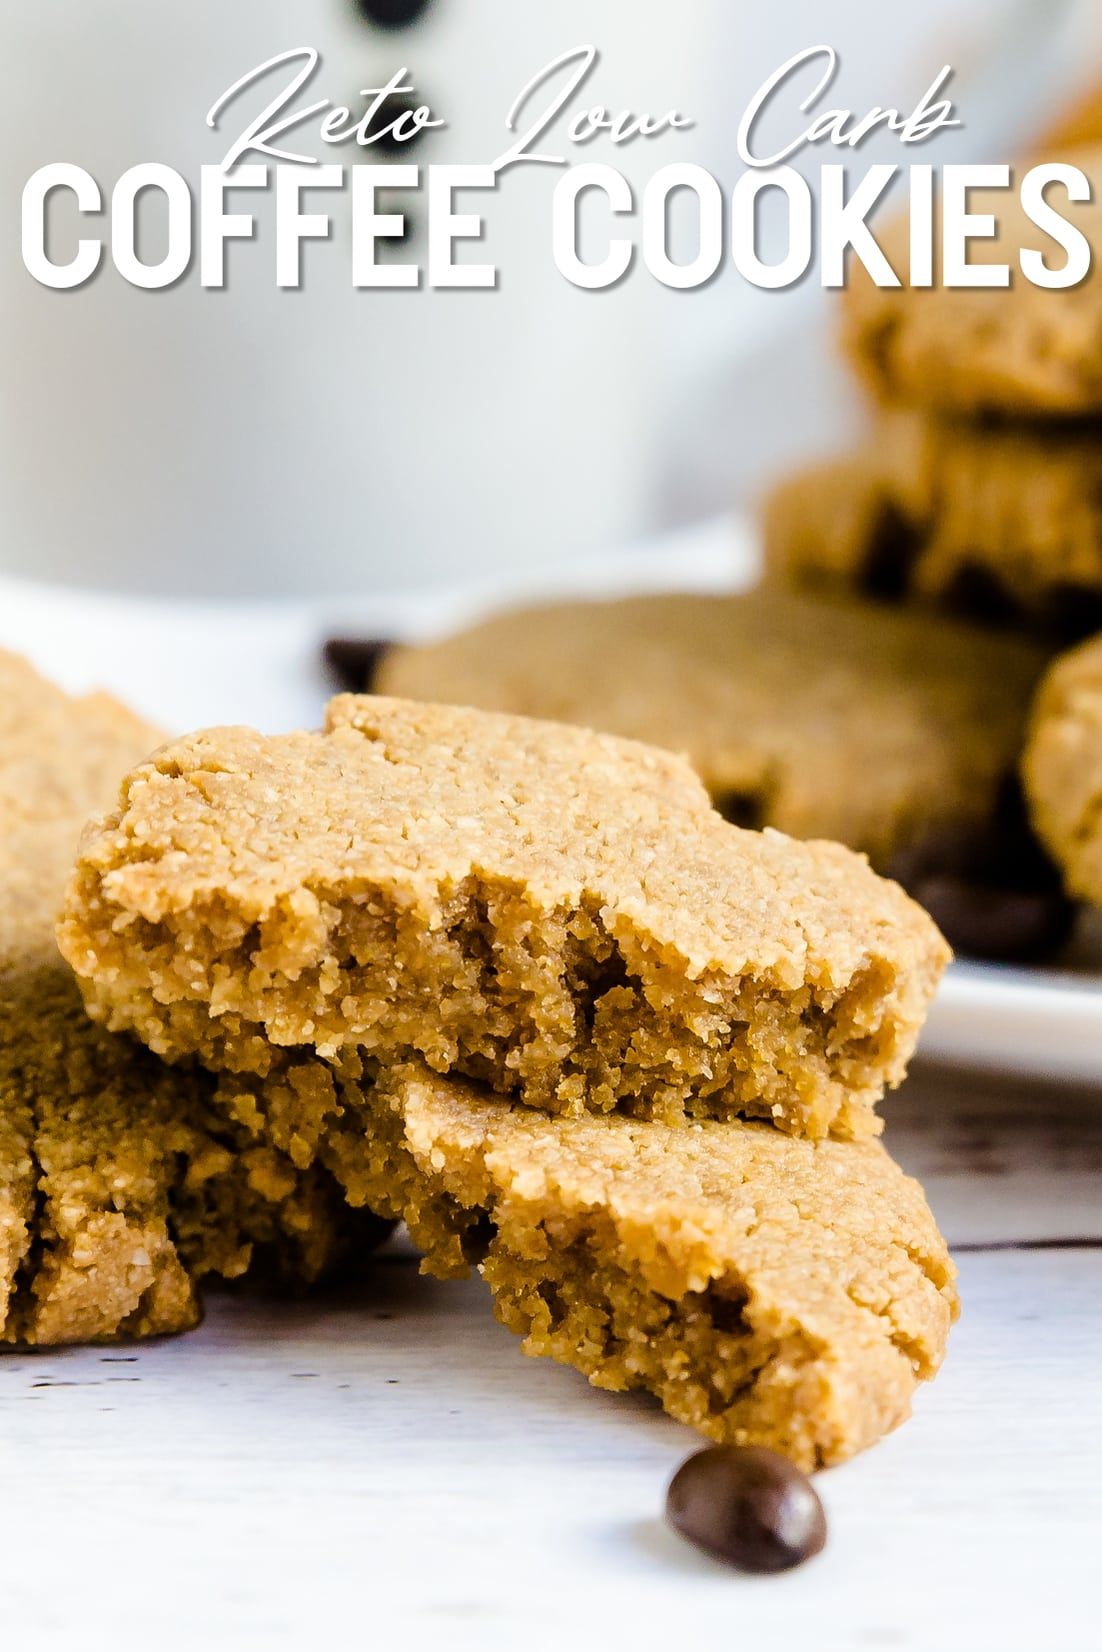 Keto Coffee Cookies stacked together with coffee beans